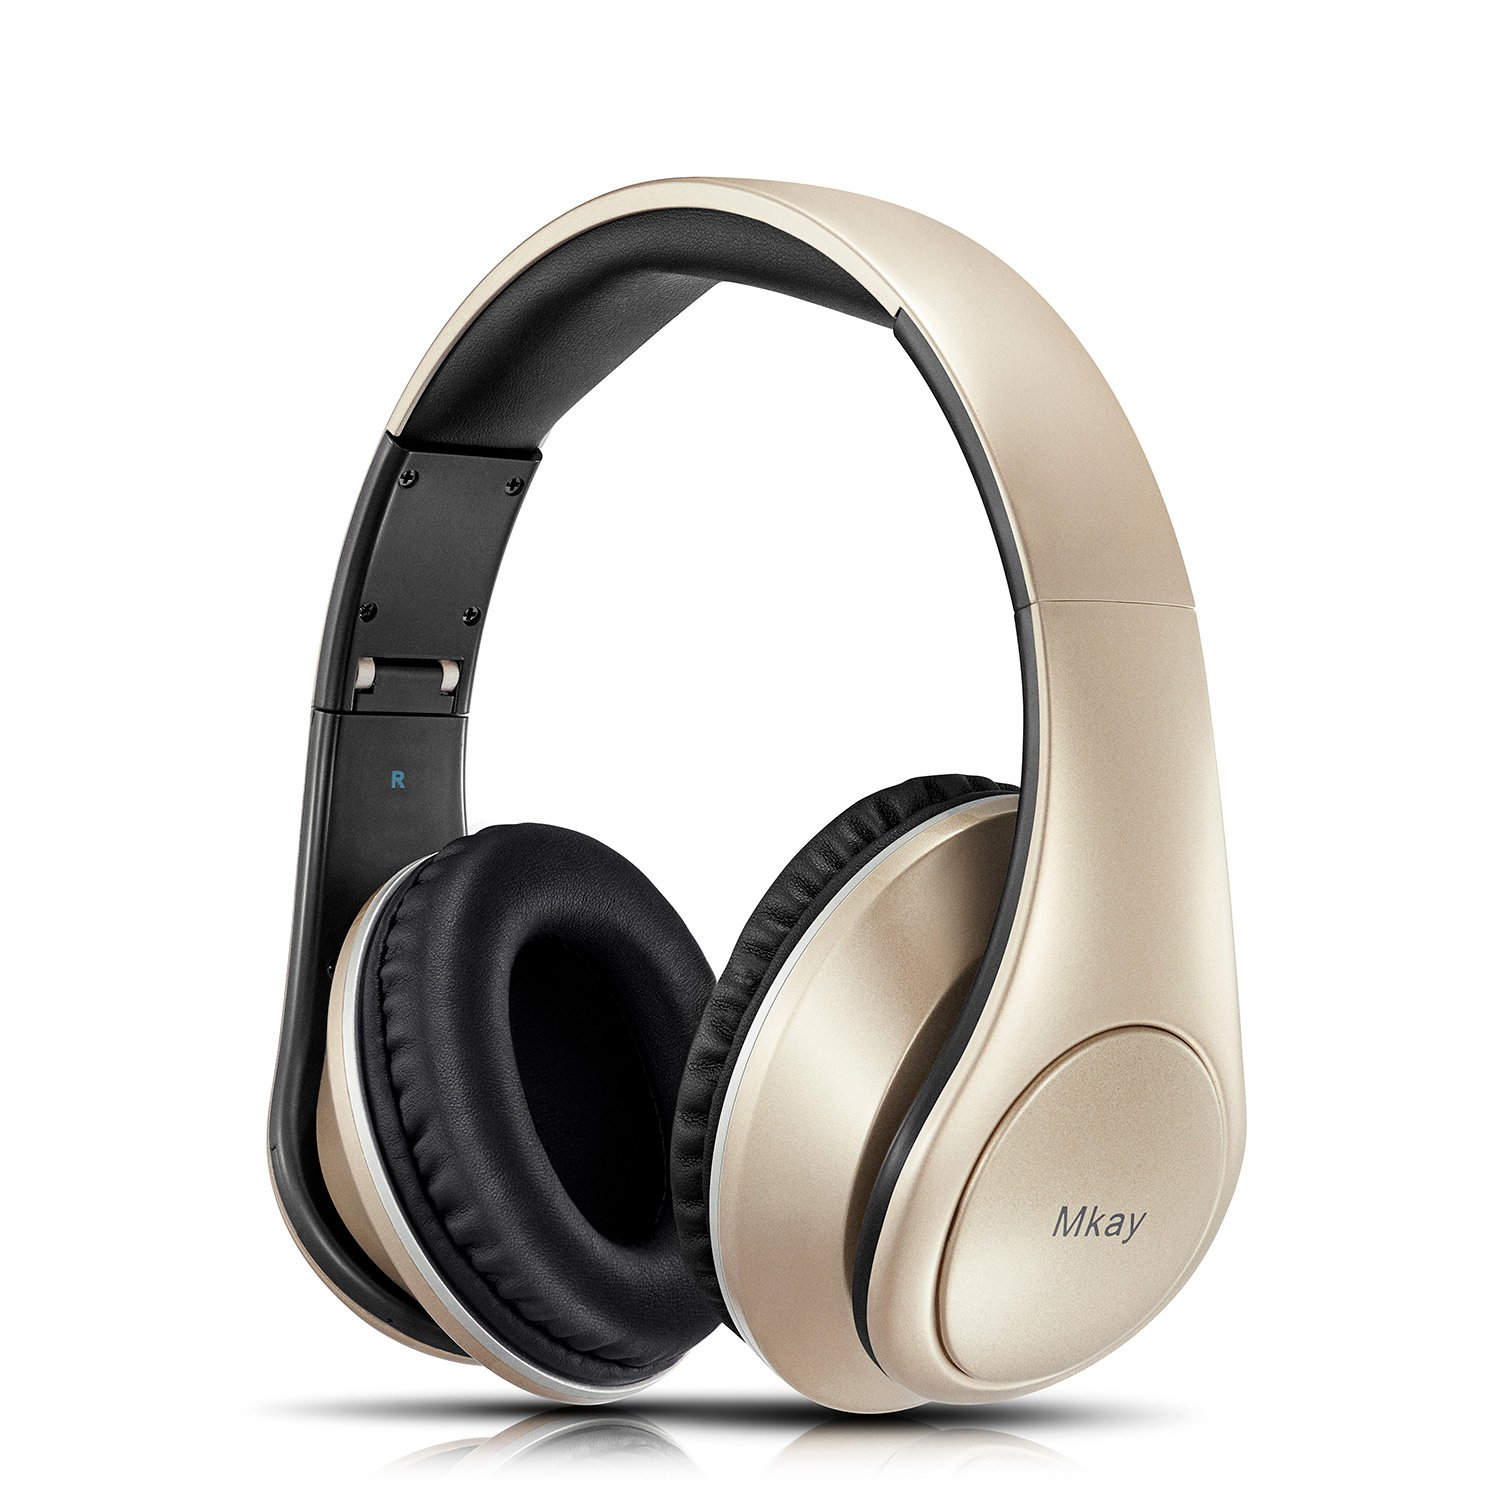 TF Card and FM Radio for Cellphones Laptop TV Rose Gold Bluetooth Headphones Over Ear Mkay Stereo Wireless Headset with Microphone